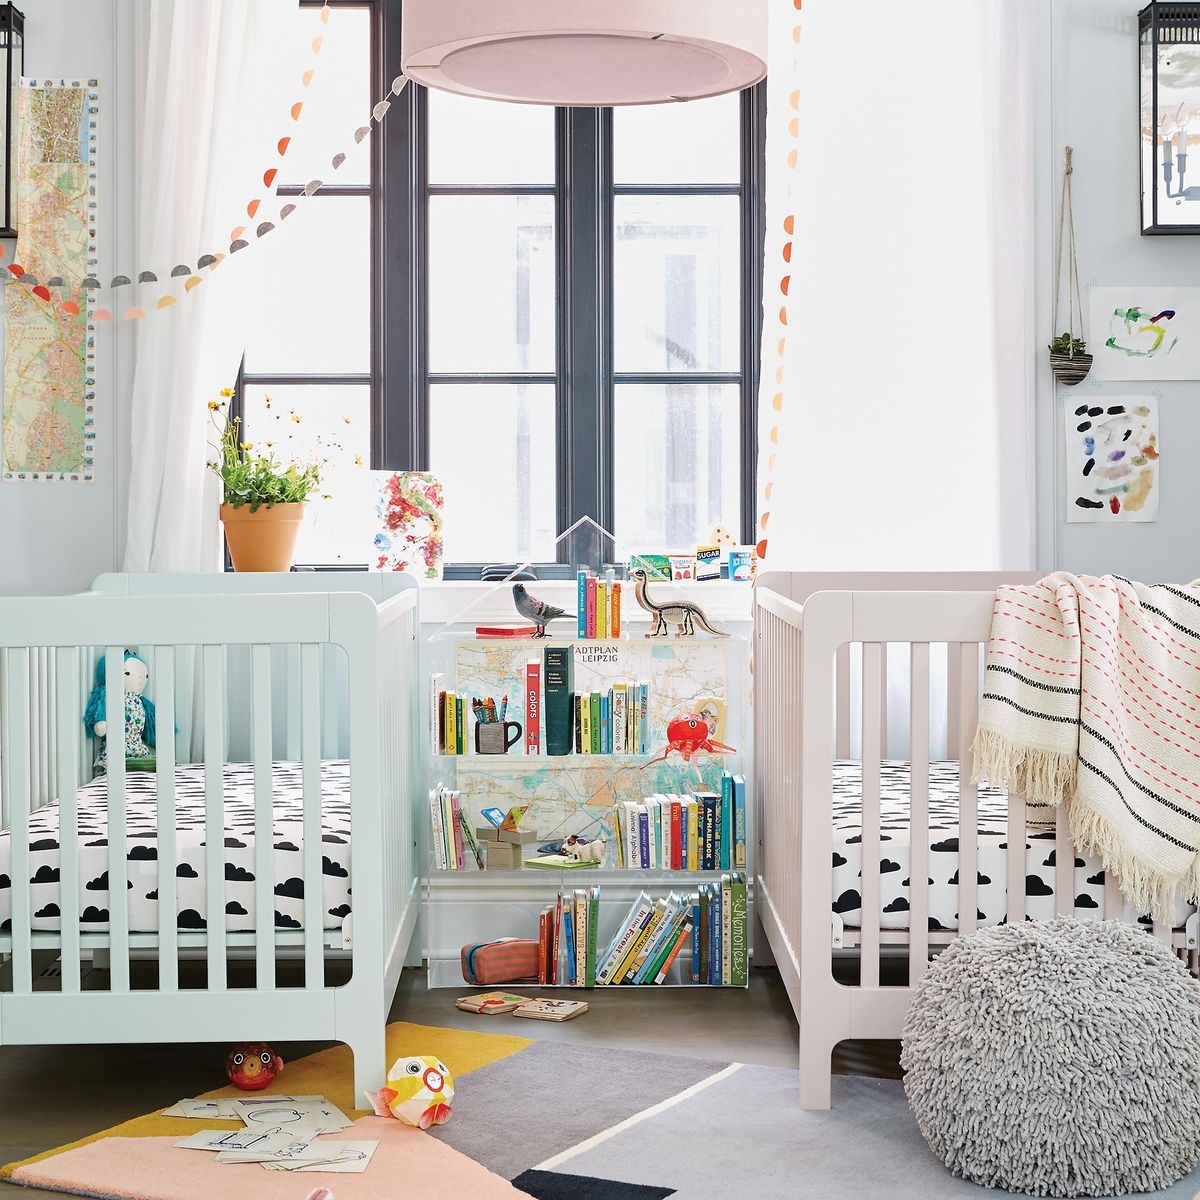 Stylish The 15 Best Online Furniture Stores: 6 Online Stores For Stylish Children's Furniture